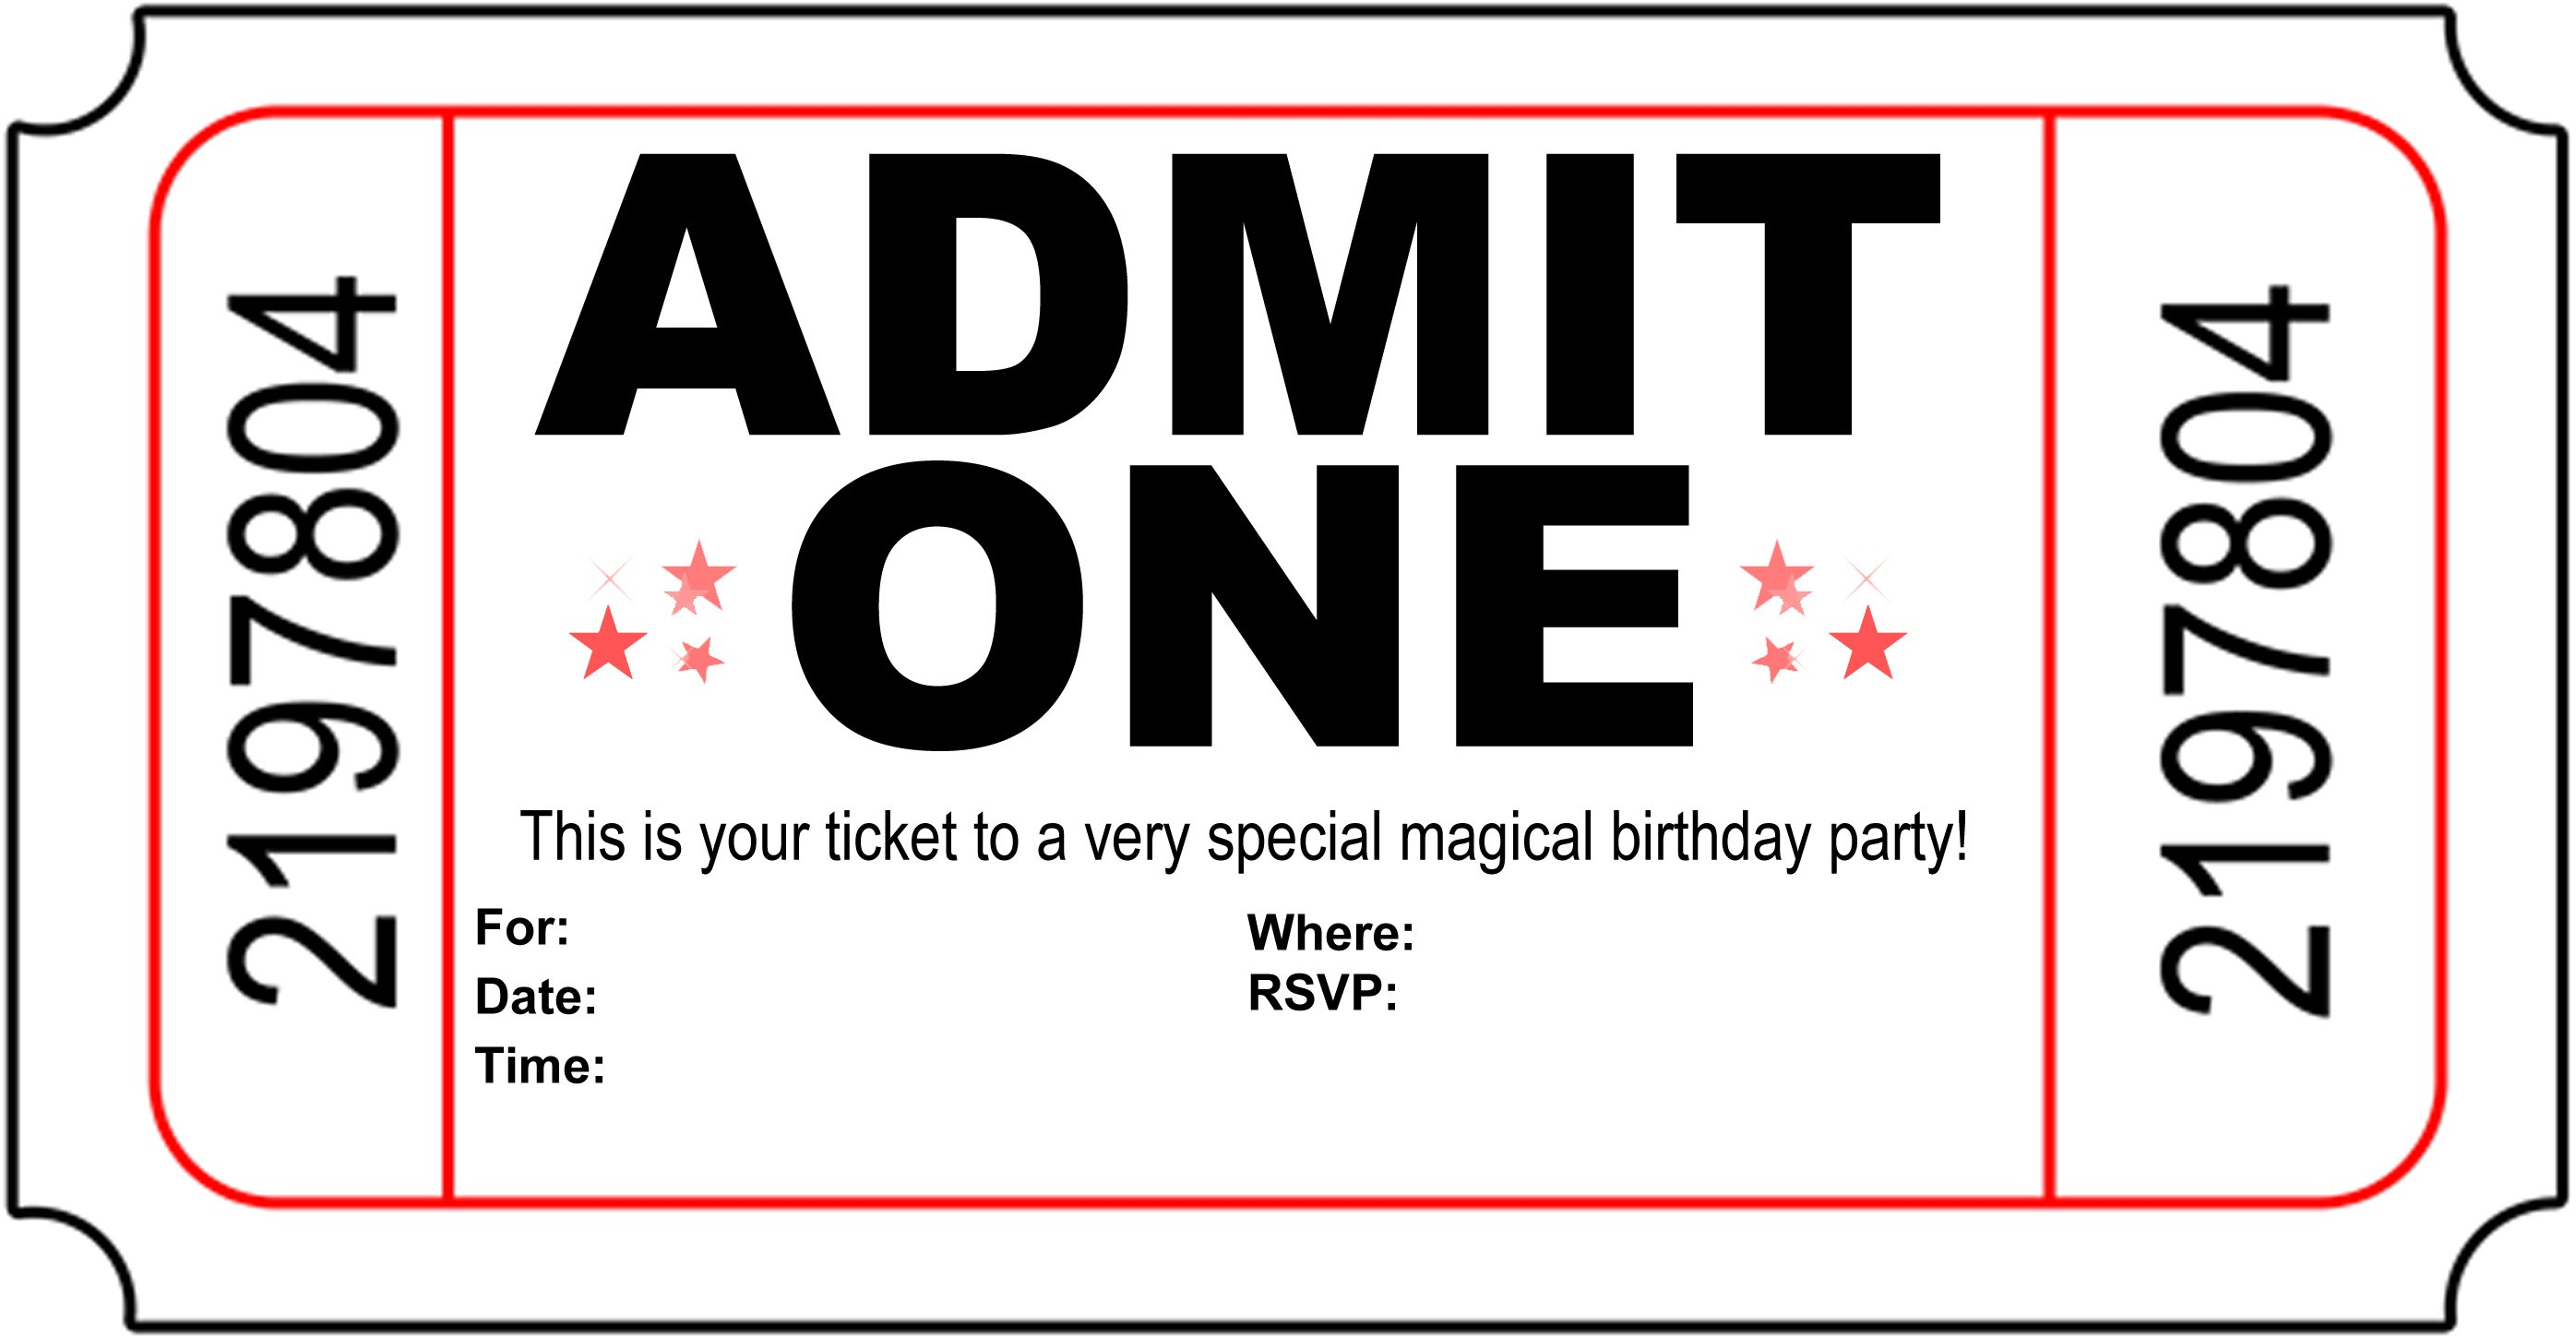 free printable birthday party invitations ; free-party-invitations-to-inspire-you-on-how-to-create-your-own-Party-invitation-1